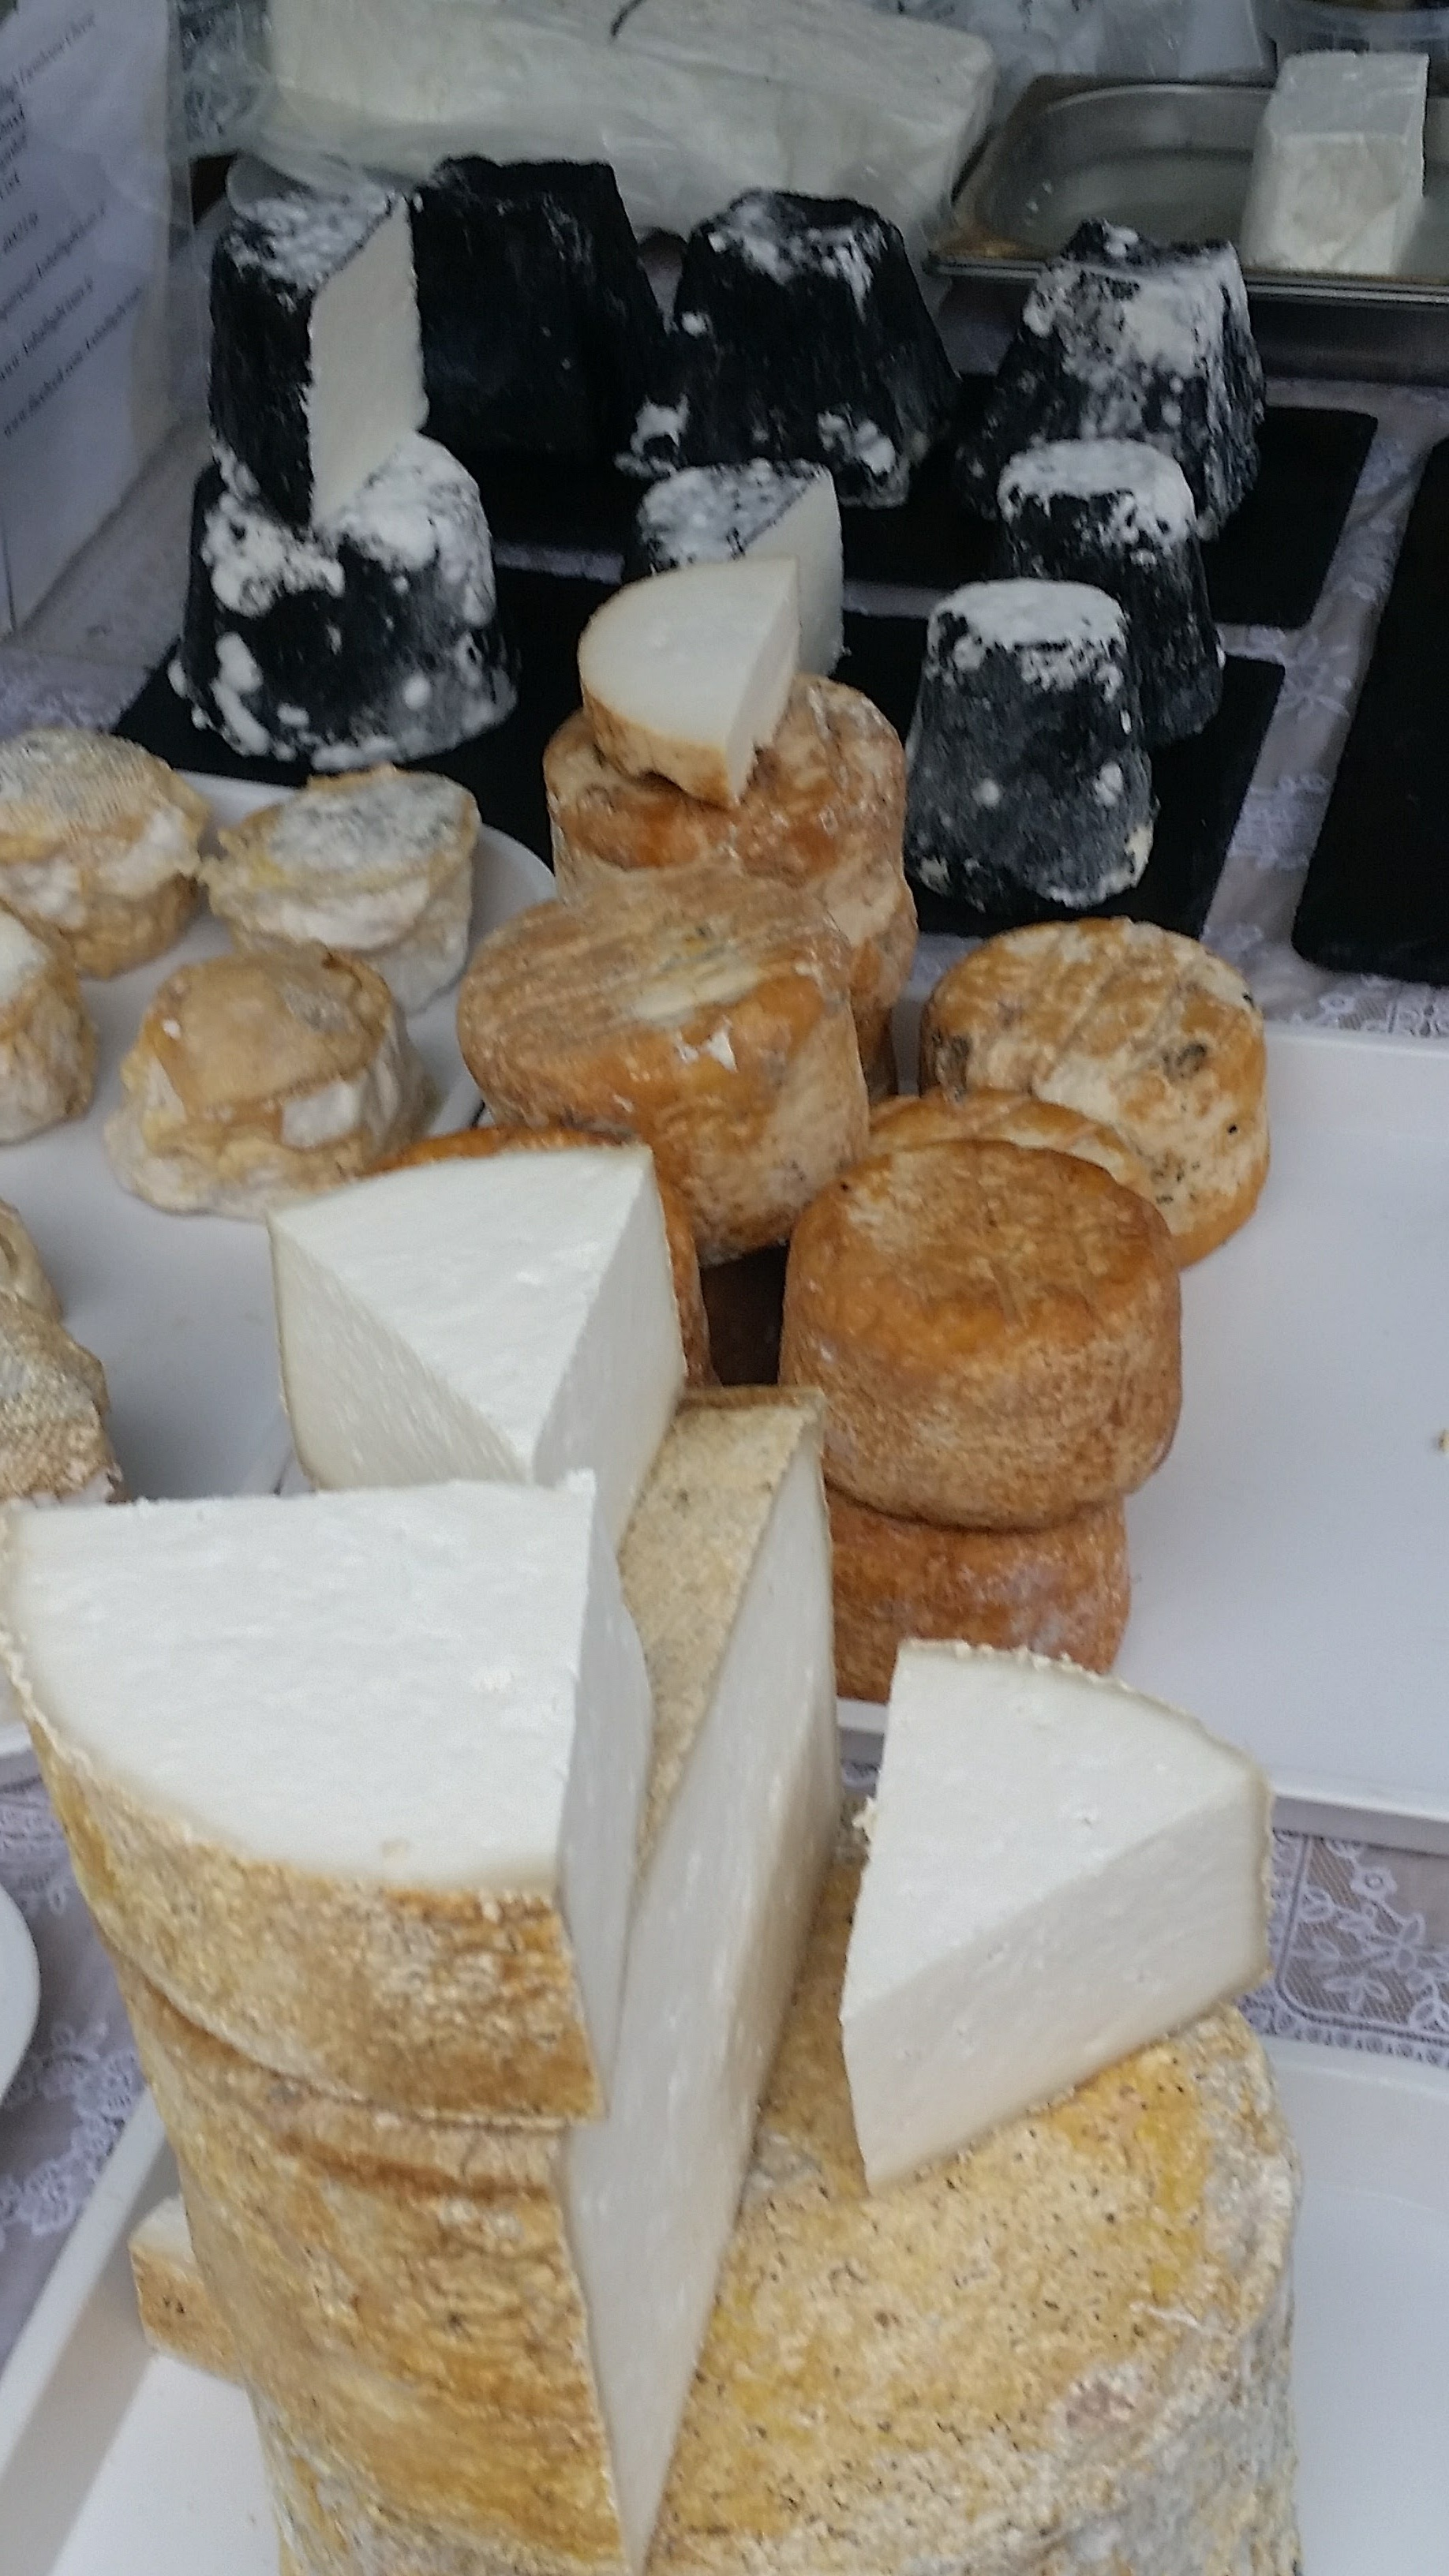 Artisan cheese, a traditional way of preserving food